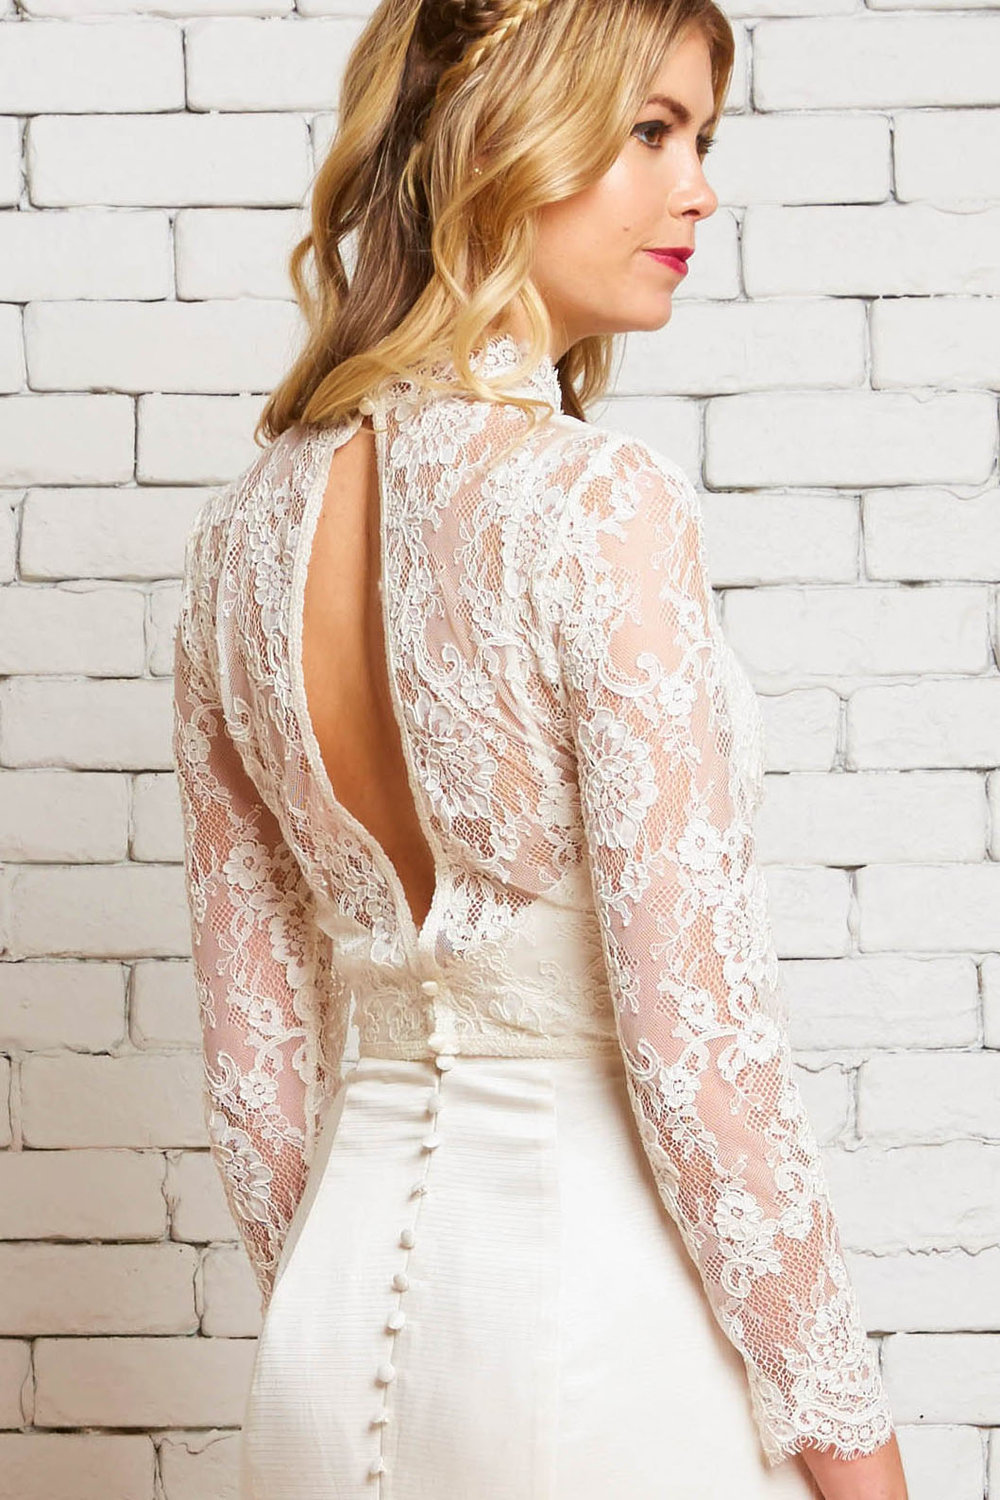 24B Victoria-Back-Rebecca Schoneveld-Modern_Vintage_Lace_Wedding_Sleeves_Top.jpg